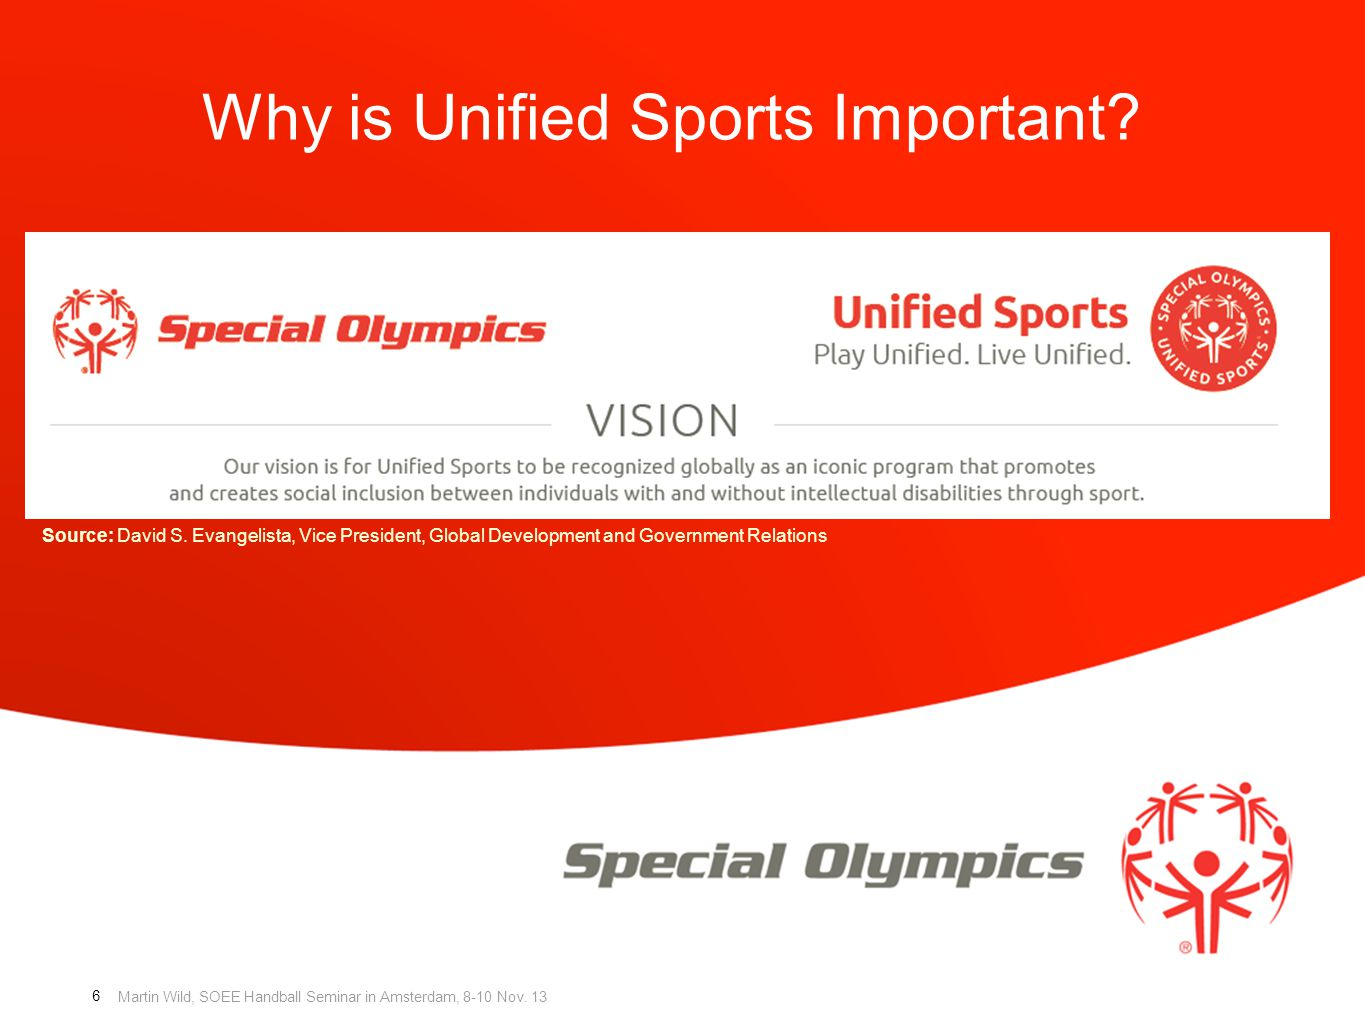 Why is Unified Sports Important